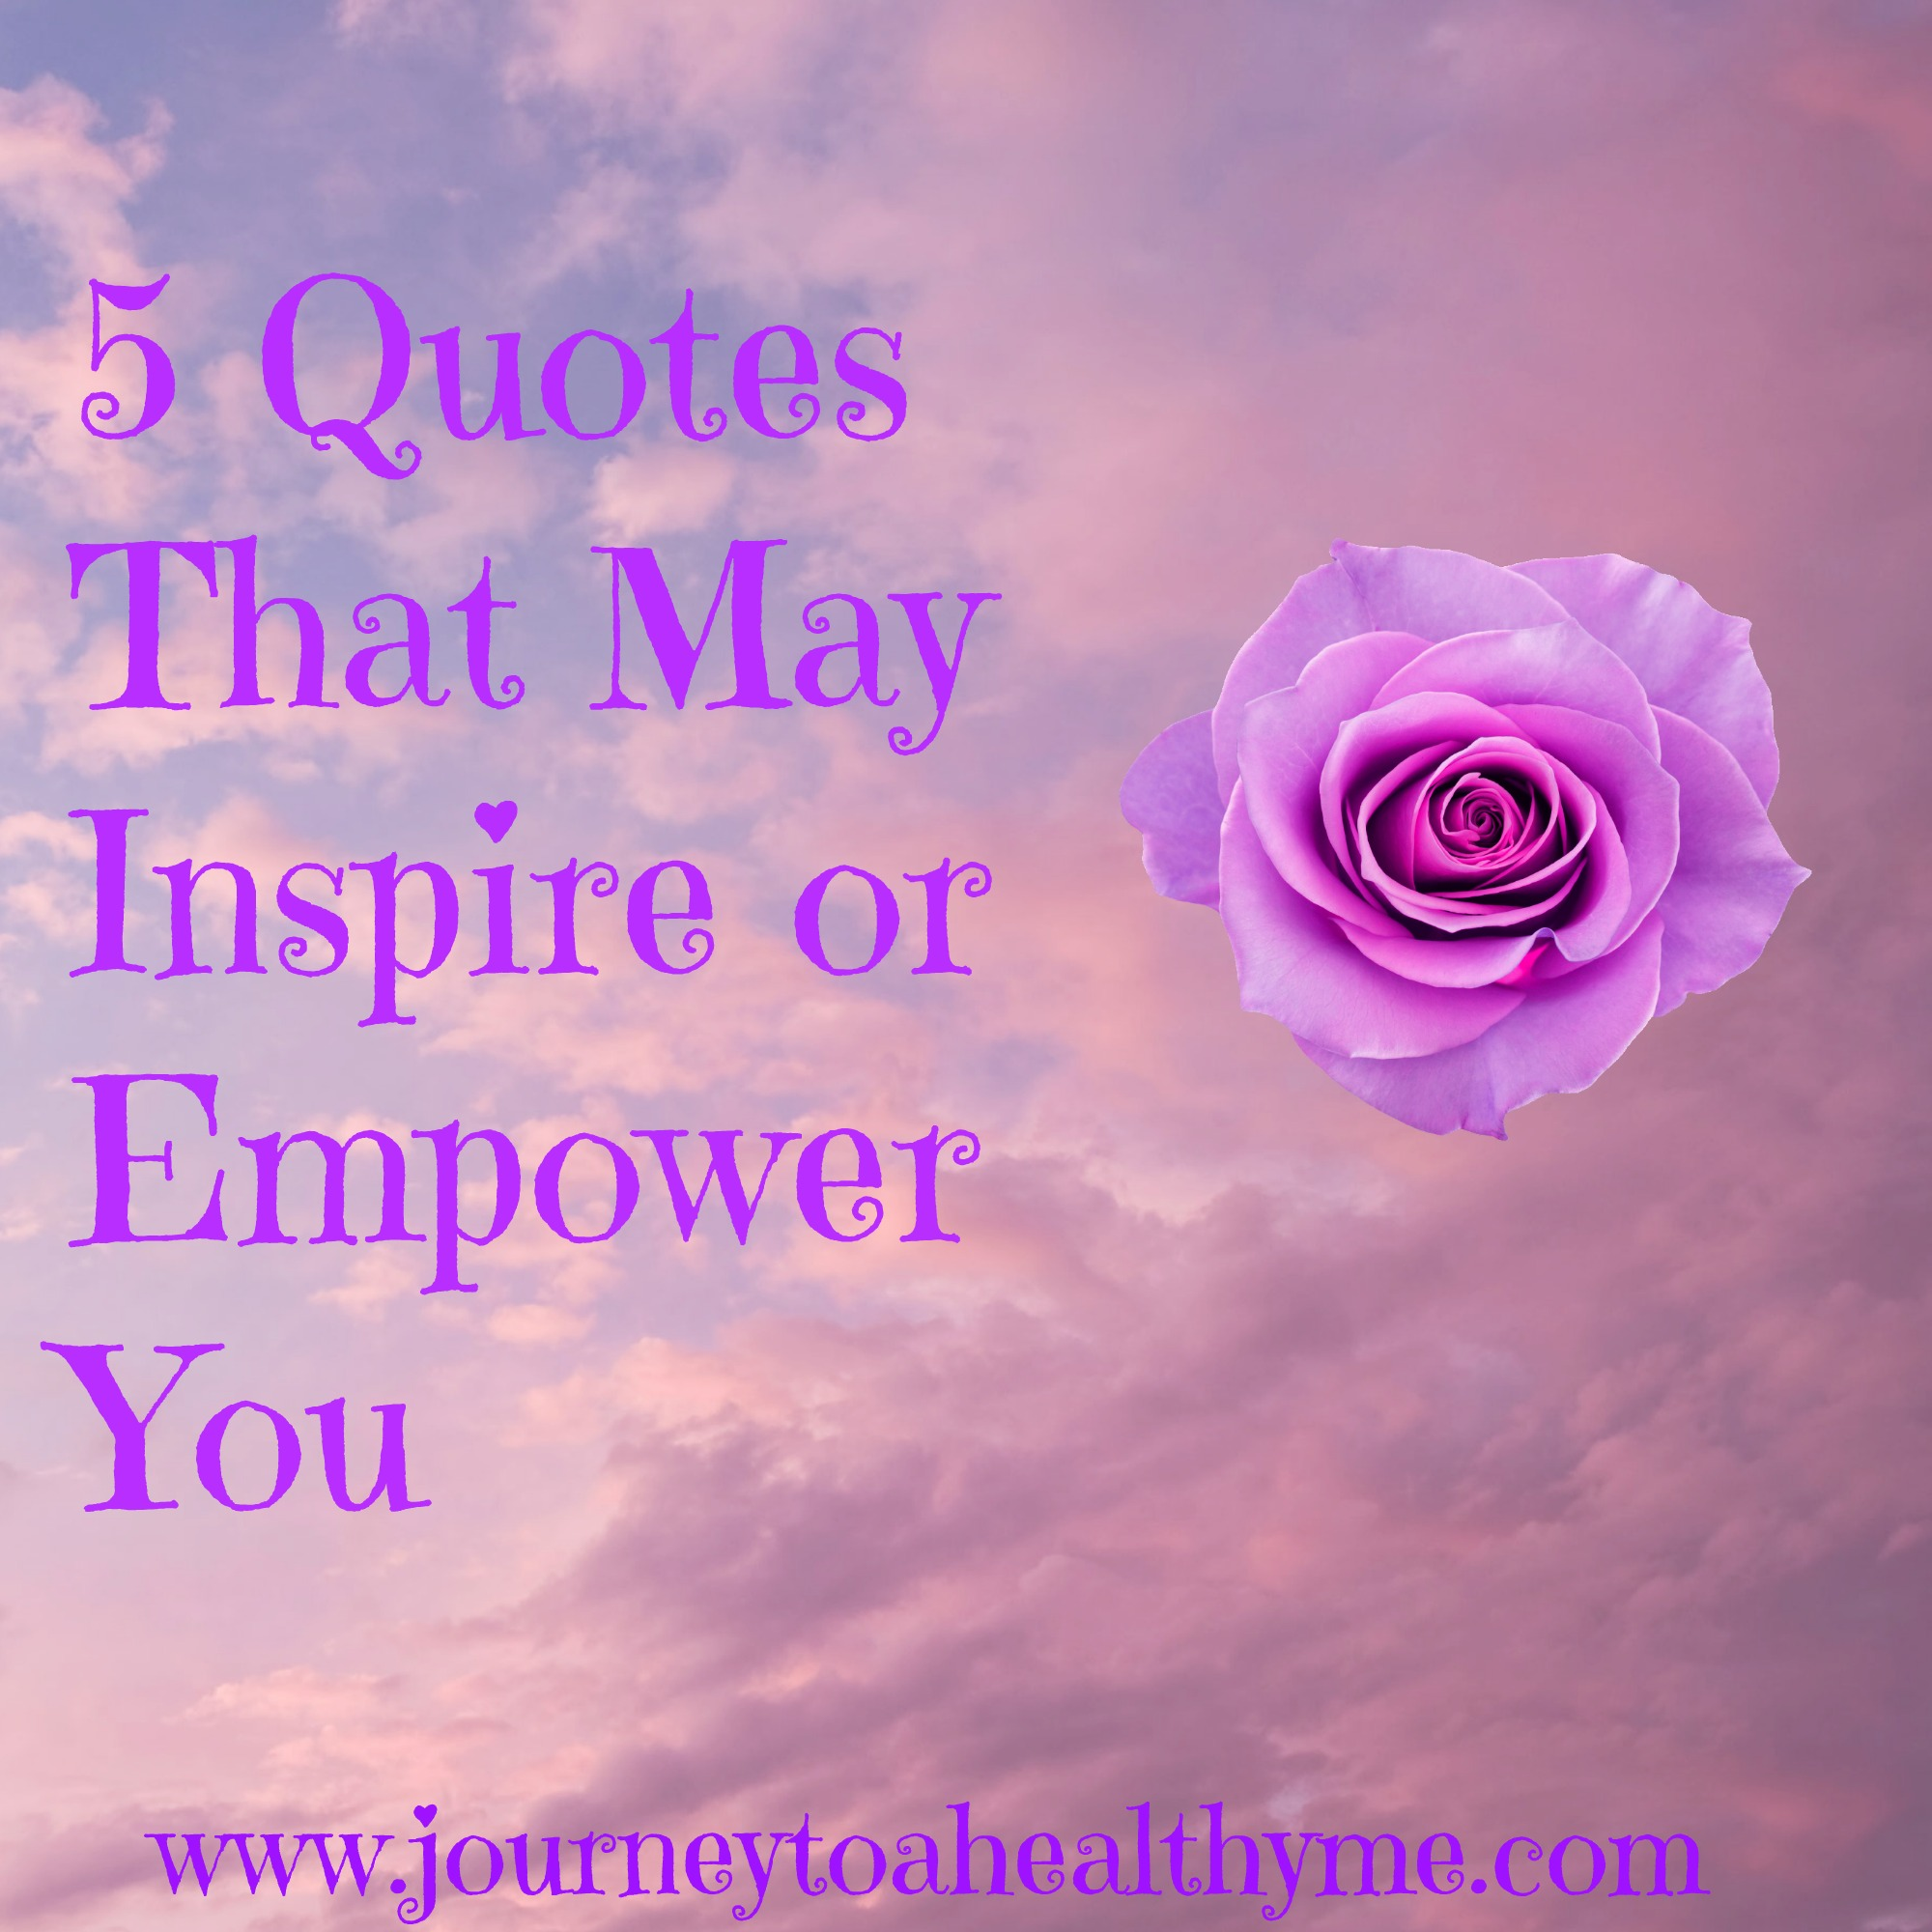 5 Quotes That May Inspire And Empower You